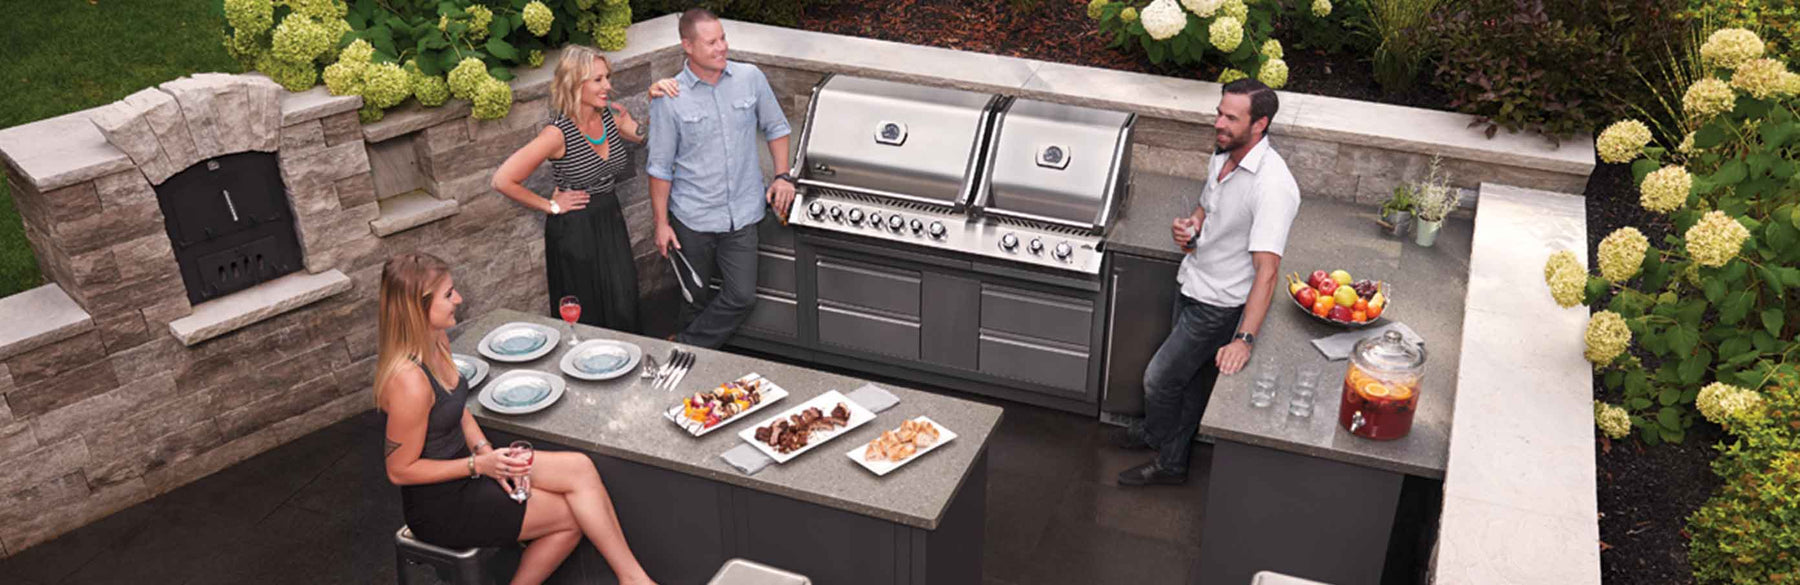 3 Reasons Why You Should Have An Outdoor Kitchen